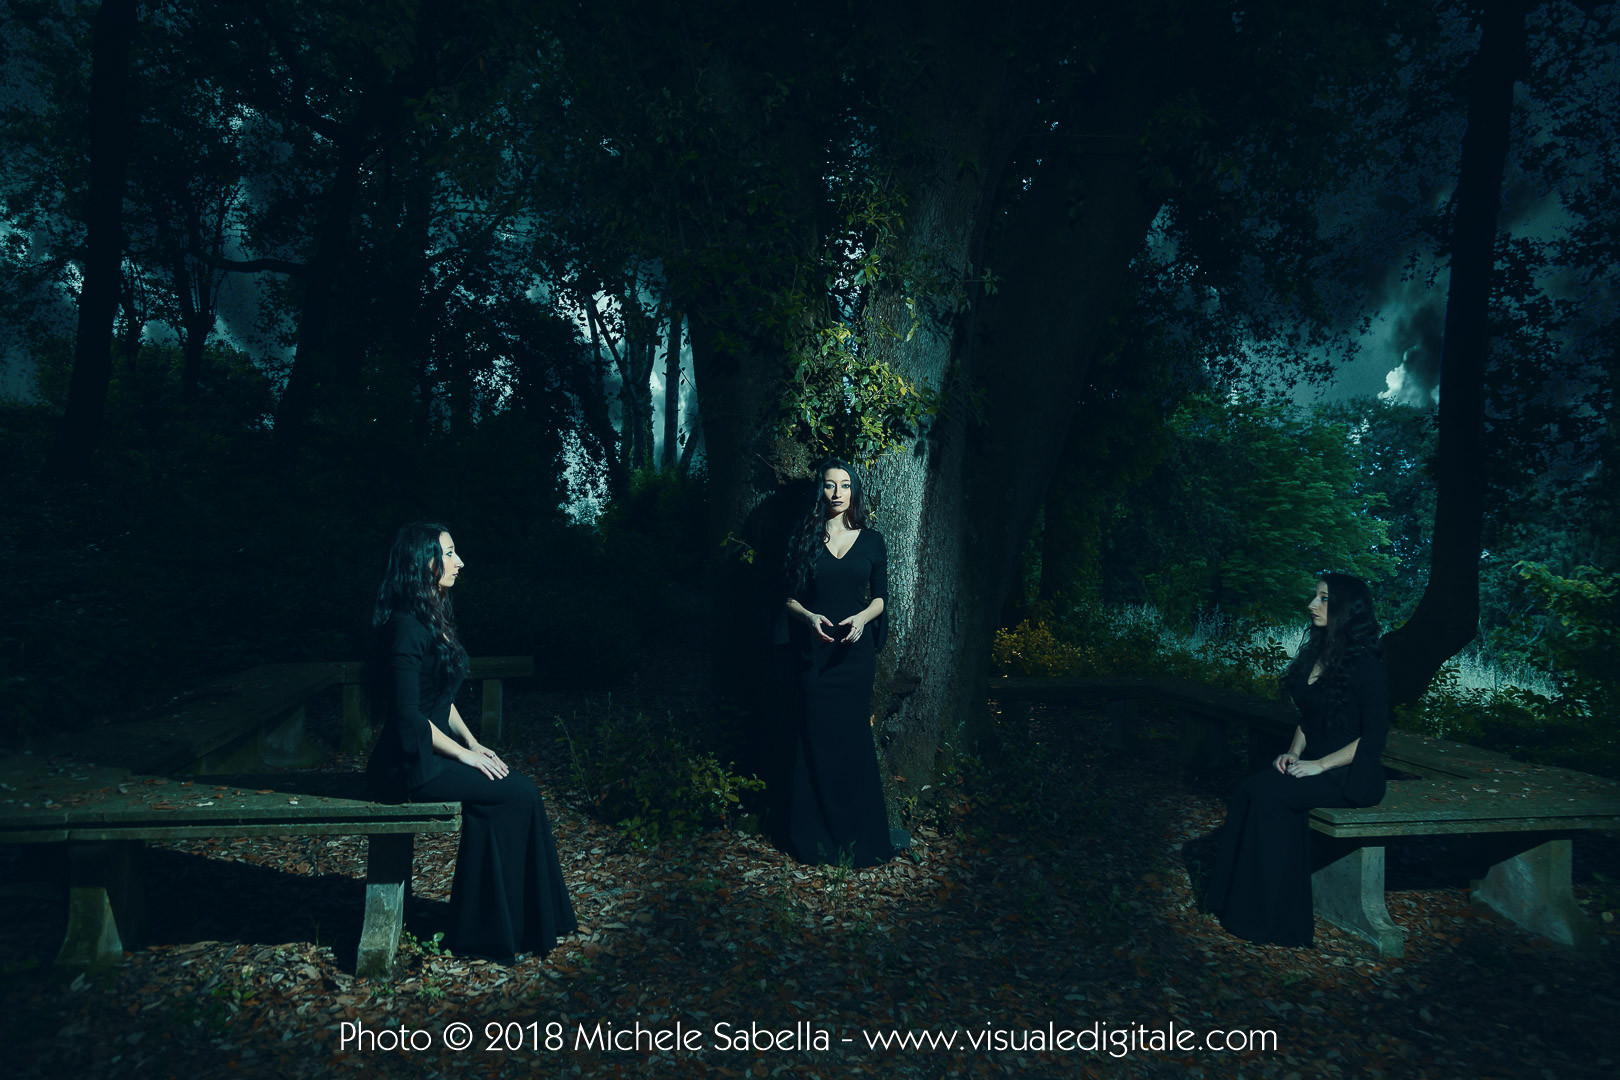 #beneventowitches The Black Witch Project Visualedigitale Foto Michele Sabella Benevento modella Federica Mercurio @feehxx